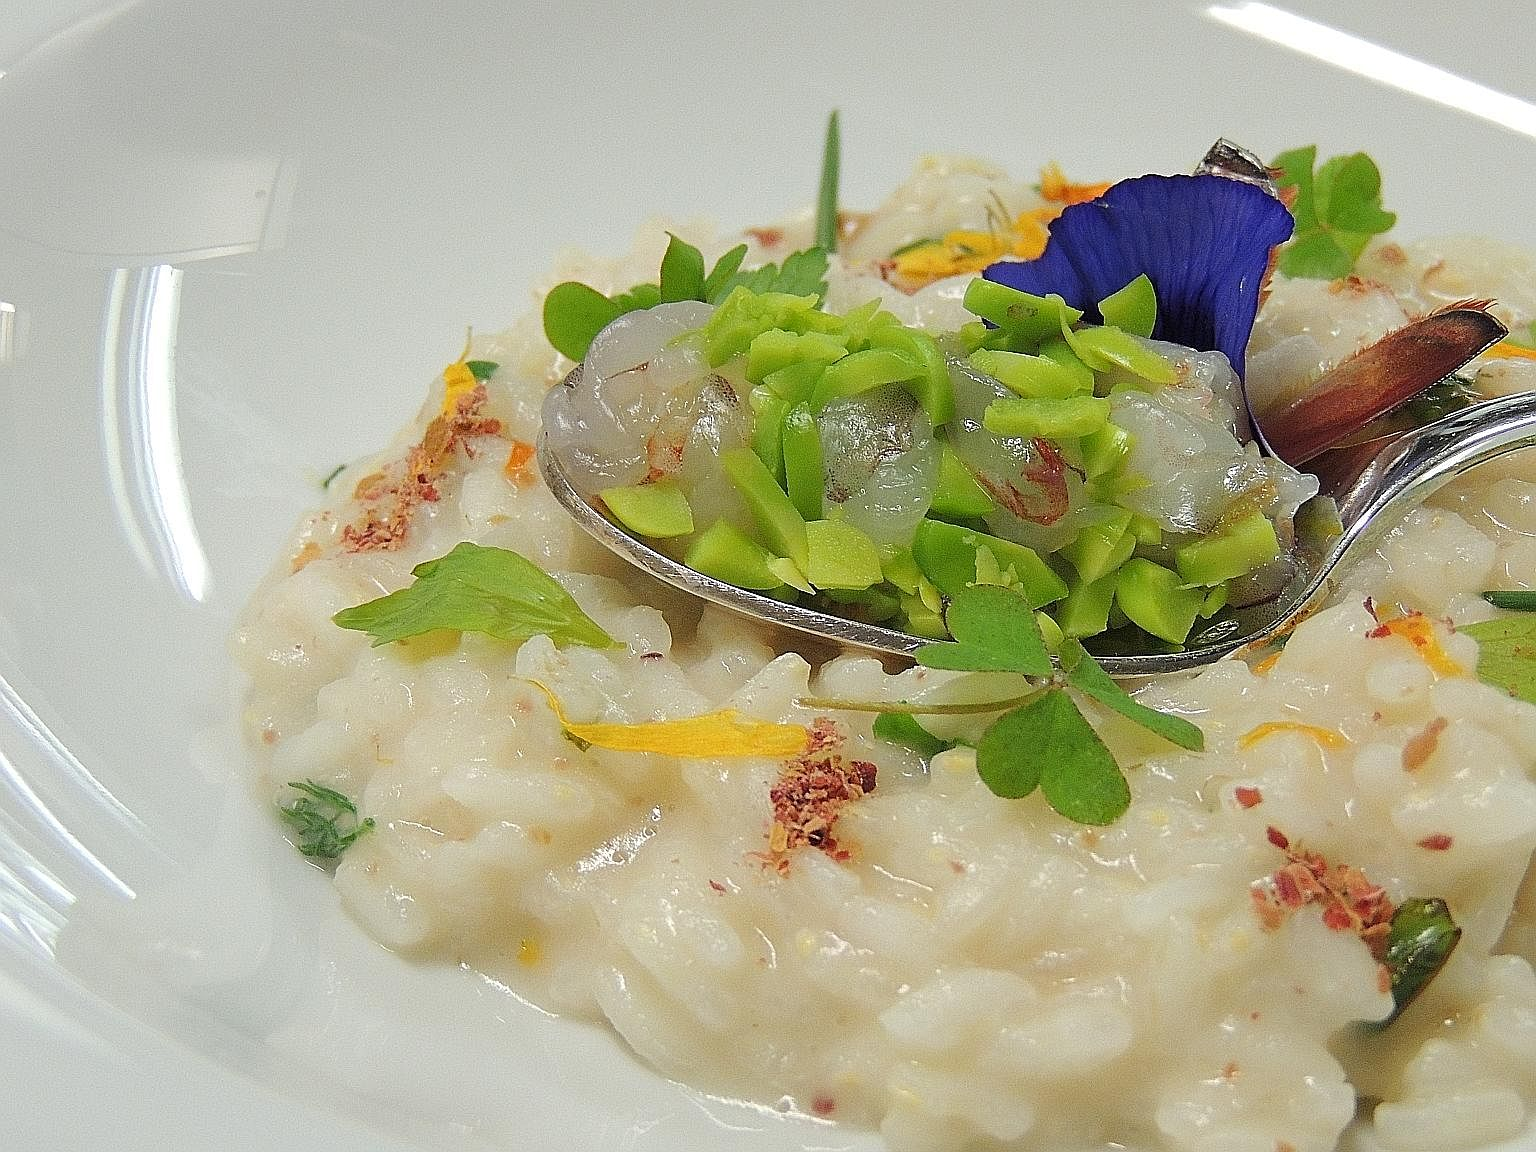 Risotto, Italy.